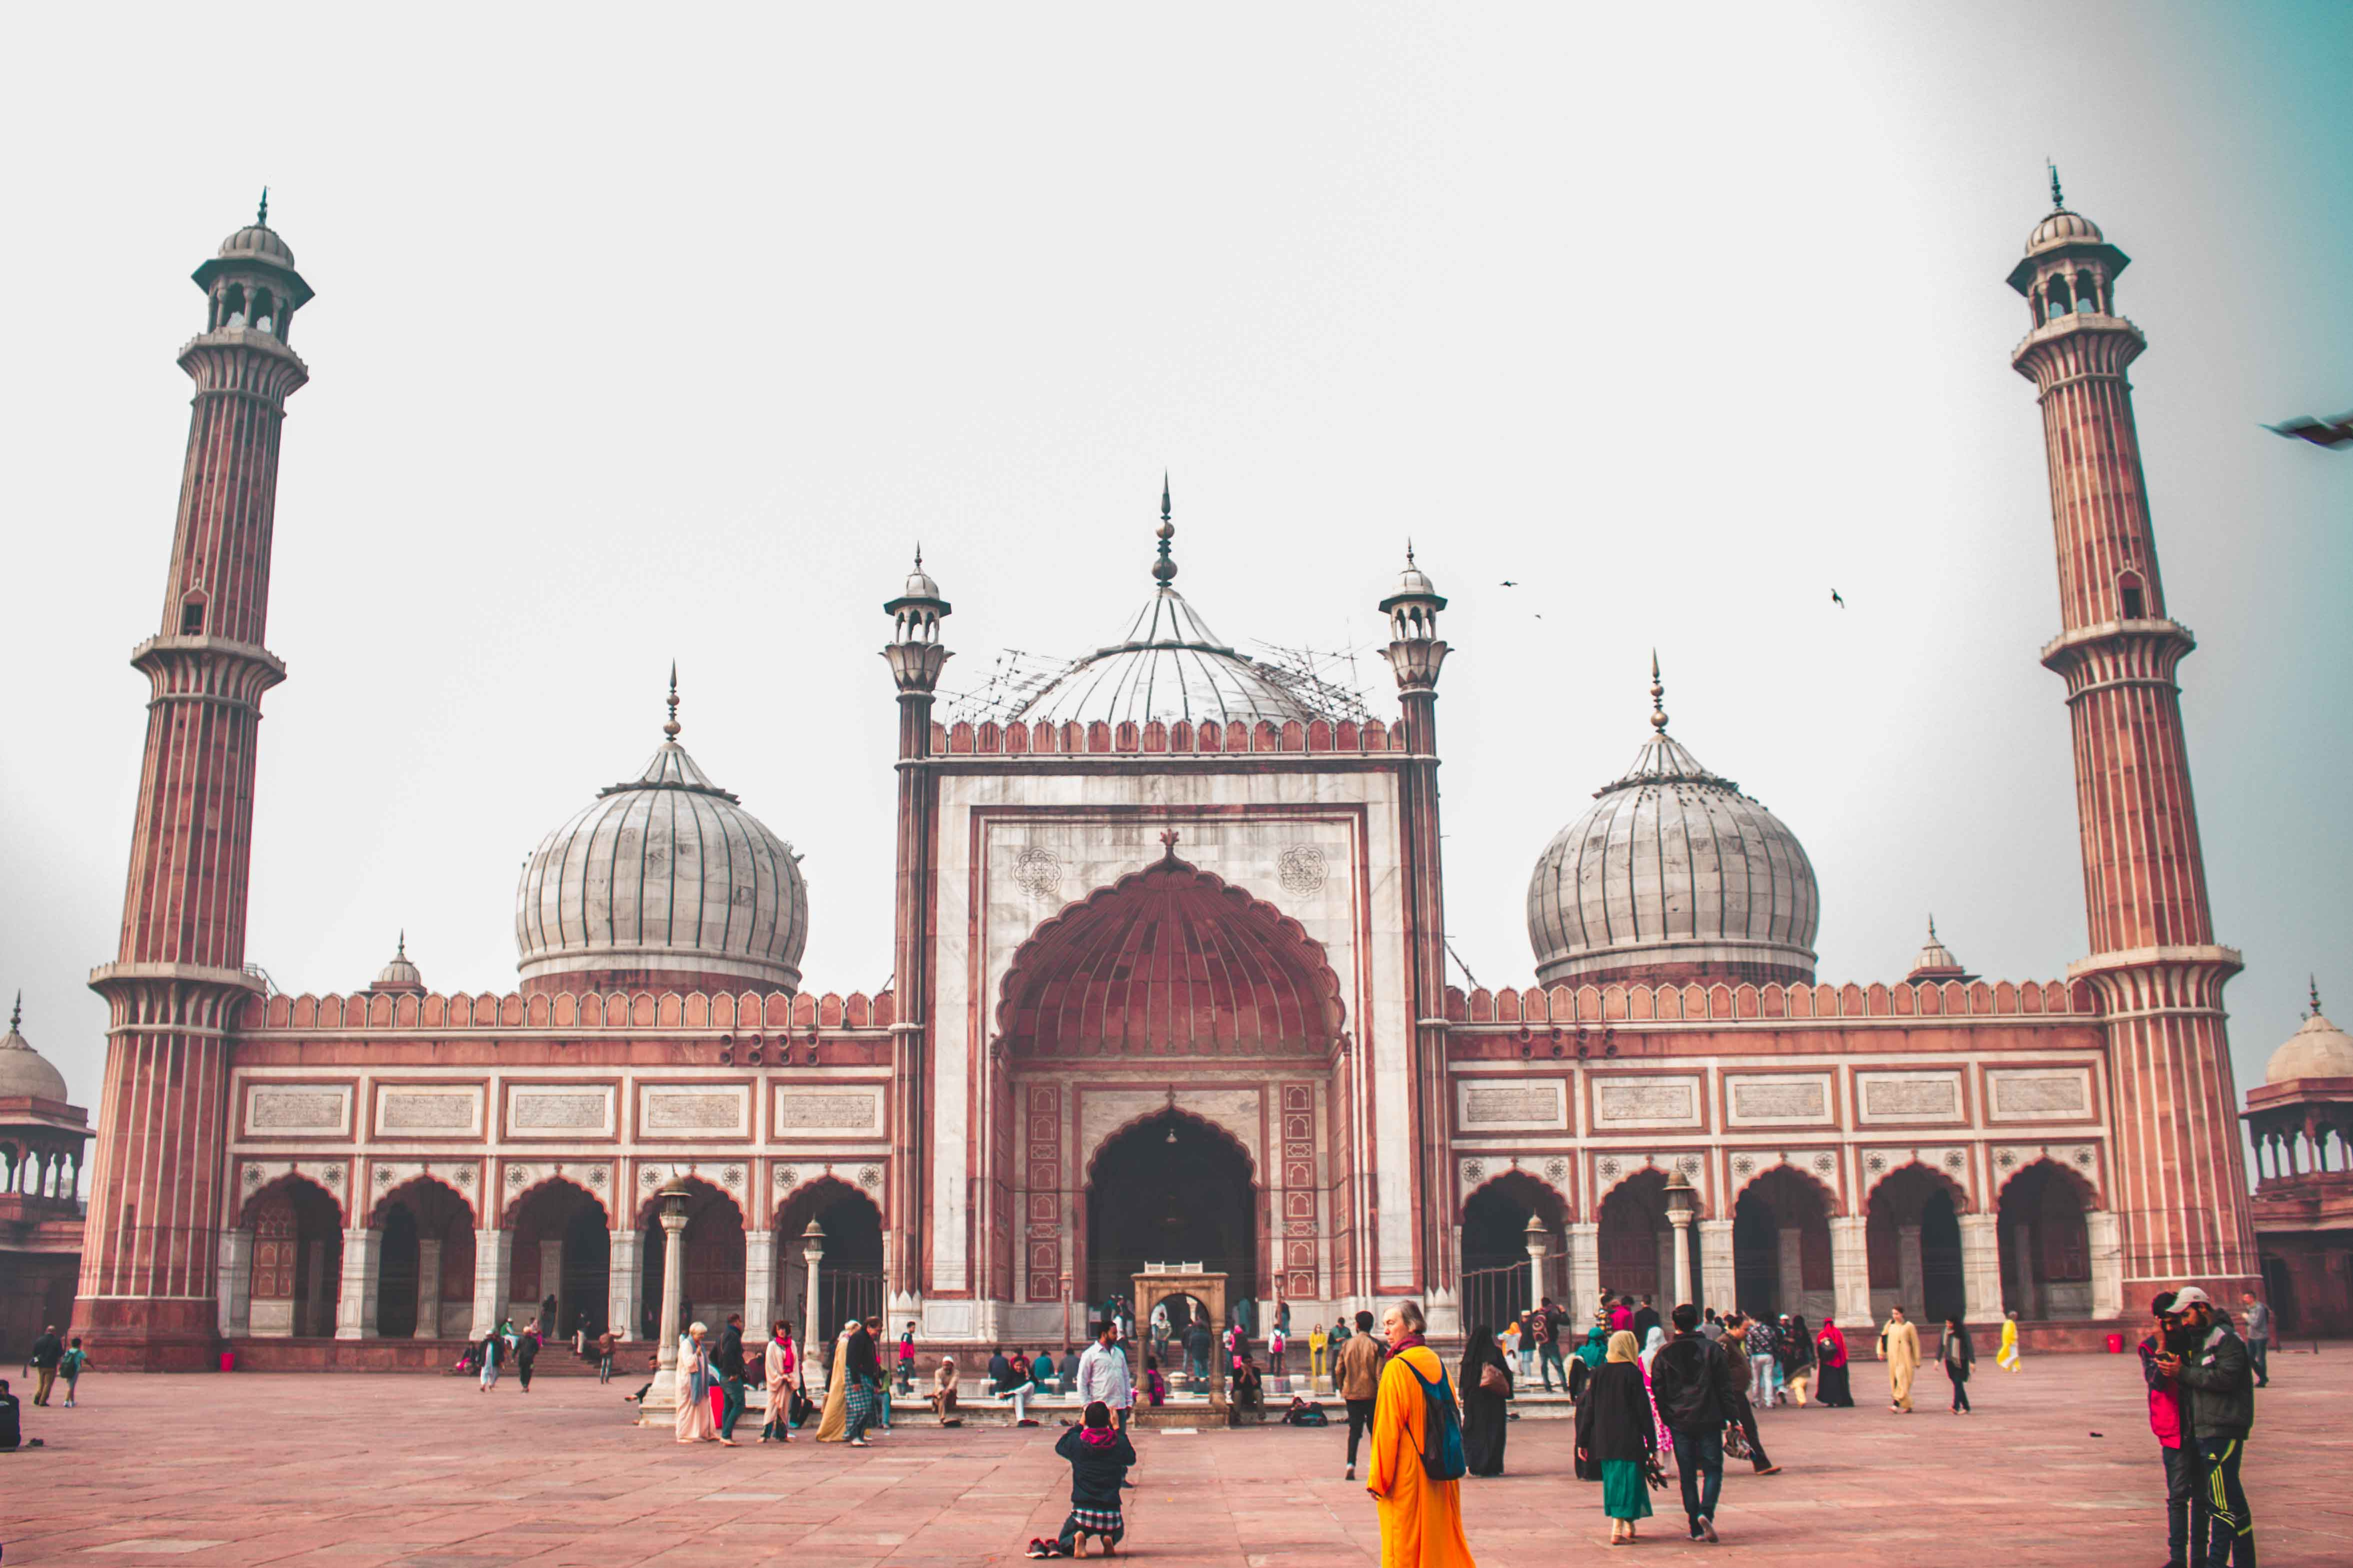 Old & New Delhi combo tour in 8 Hours with hotel pick and drop-off